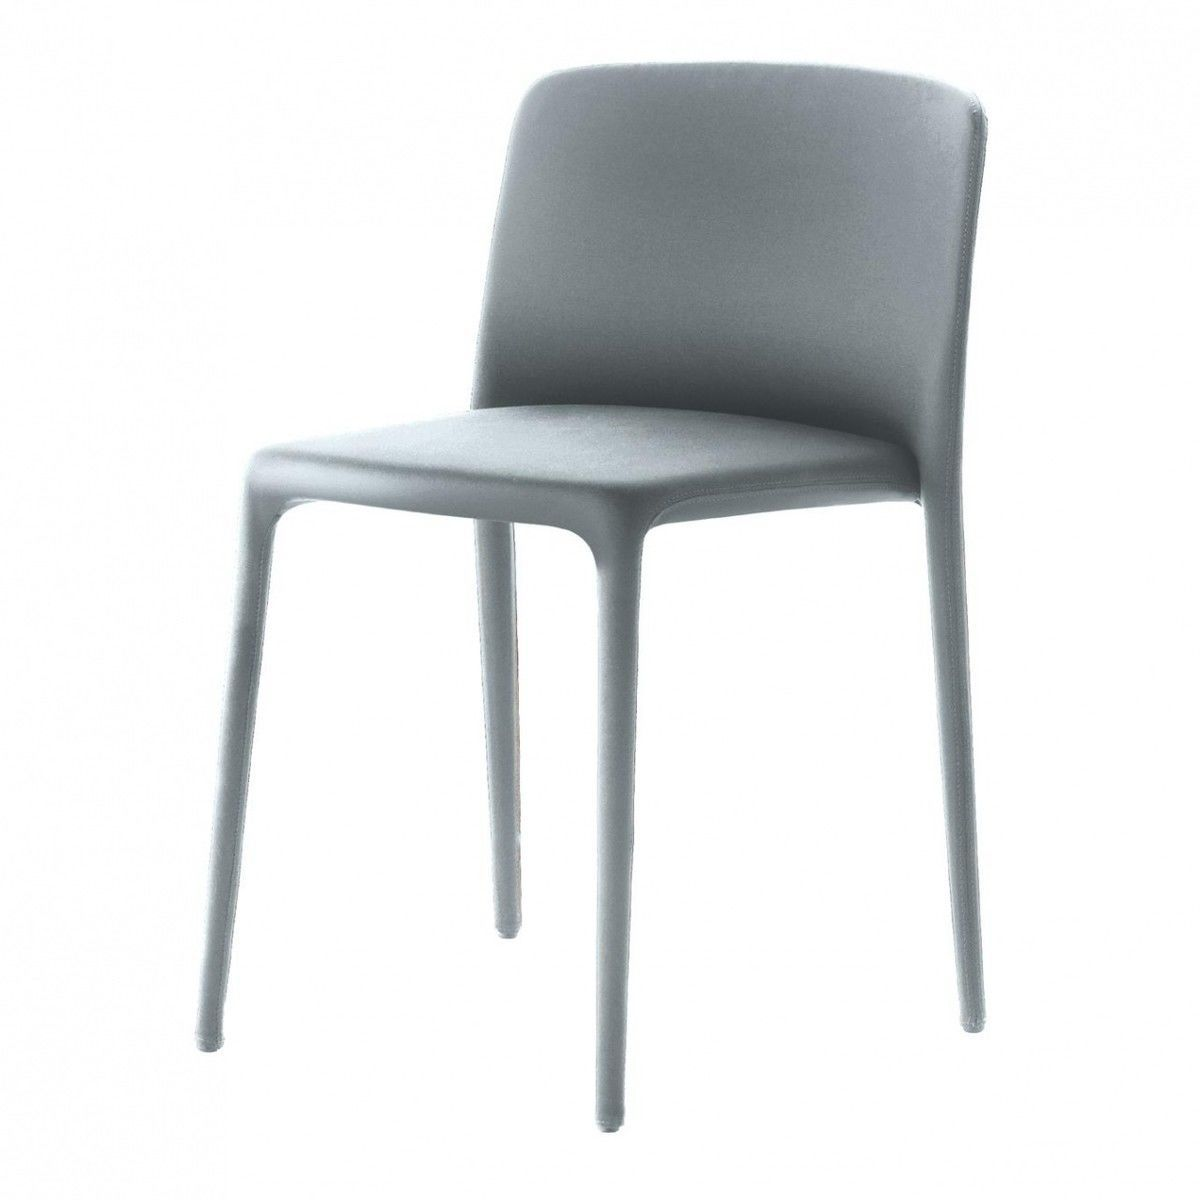 achille chair mdf italia. Black Bedroom Furniture Sets. Home Design Ideas